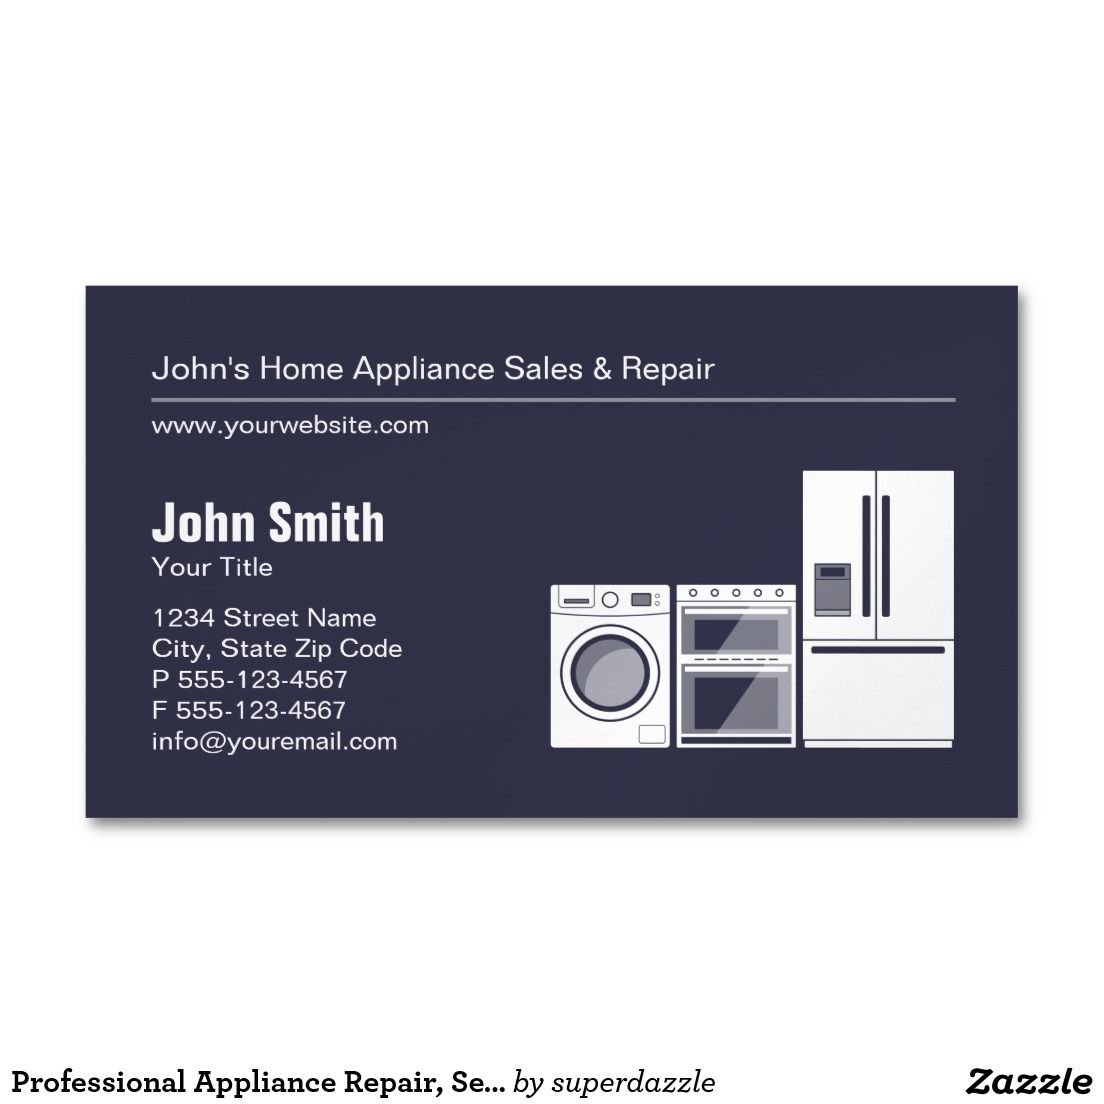 Professional Appliance Repair, Service and Sale Business Card Magnet ...